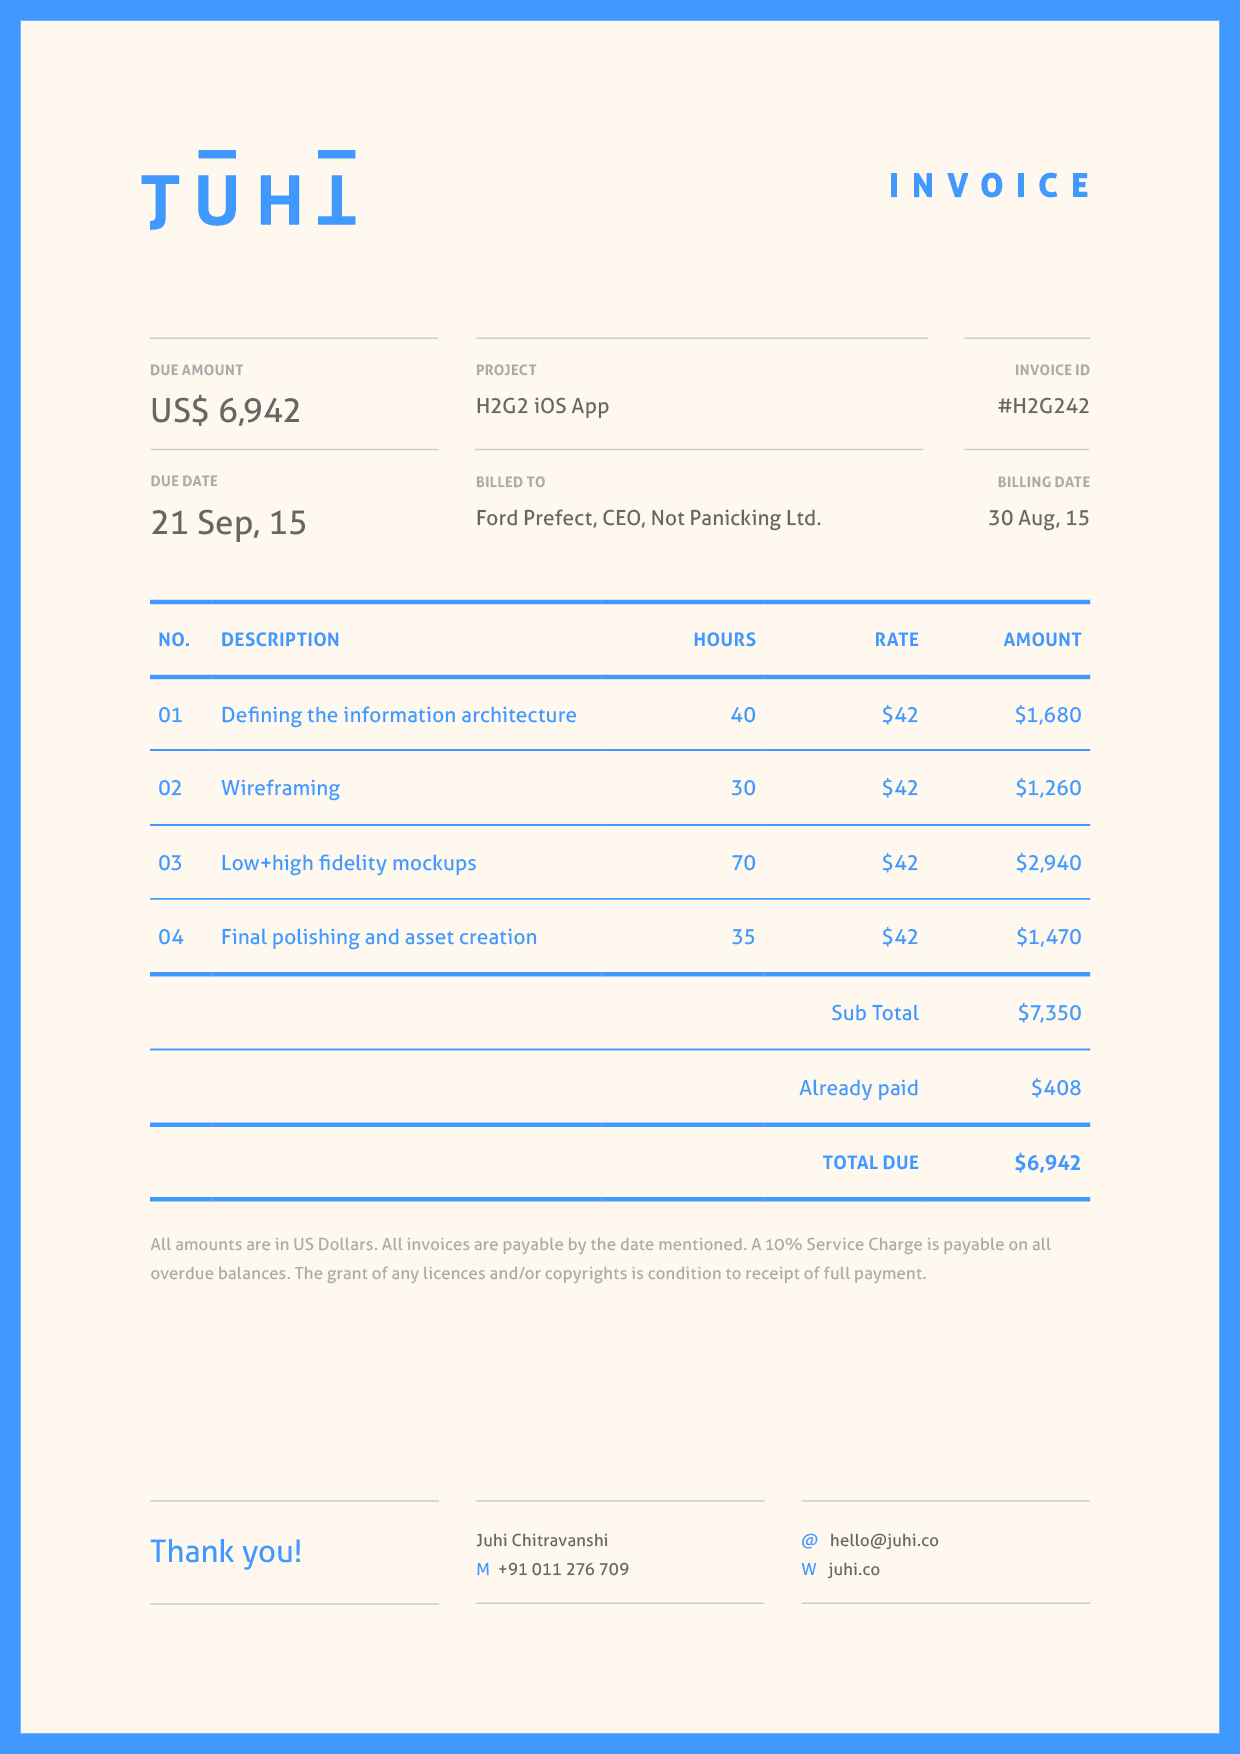 Usdgus  Personable Dont Hold Back On Your Invoice  Inspiring Designs  With Exquisite Invoice By Juhi Chitravanshi Follow With Delectable Bursar Receipt Also Request Return Receipt In Addition Receipt Examples And Read Receipt Apple Mail As Well As Movie Box Office Receipts Additionally Receipt For A Donut From Inspirationfeedcom With Usdgus  Exquisite Dont Hold Back On Your Invoice  Inspiring Designs  With Delectable Invoice By Juhi Chitravanshi Follow And Personable Bursar Receipt Also Request Return Receipt In Addition Receipt Examples From Inspirationfeedcom